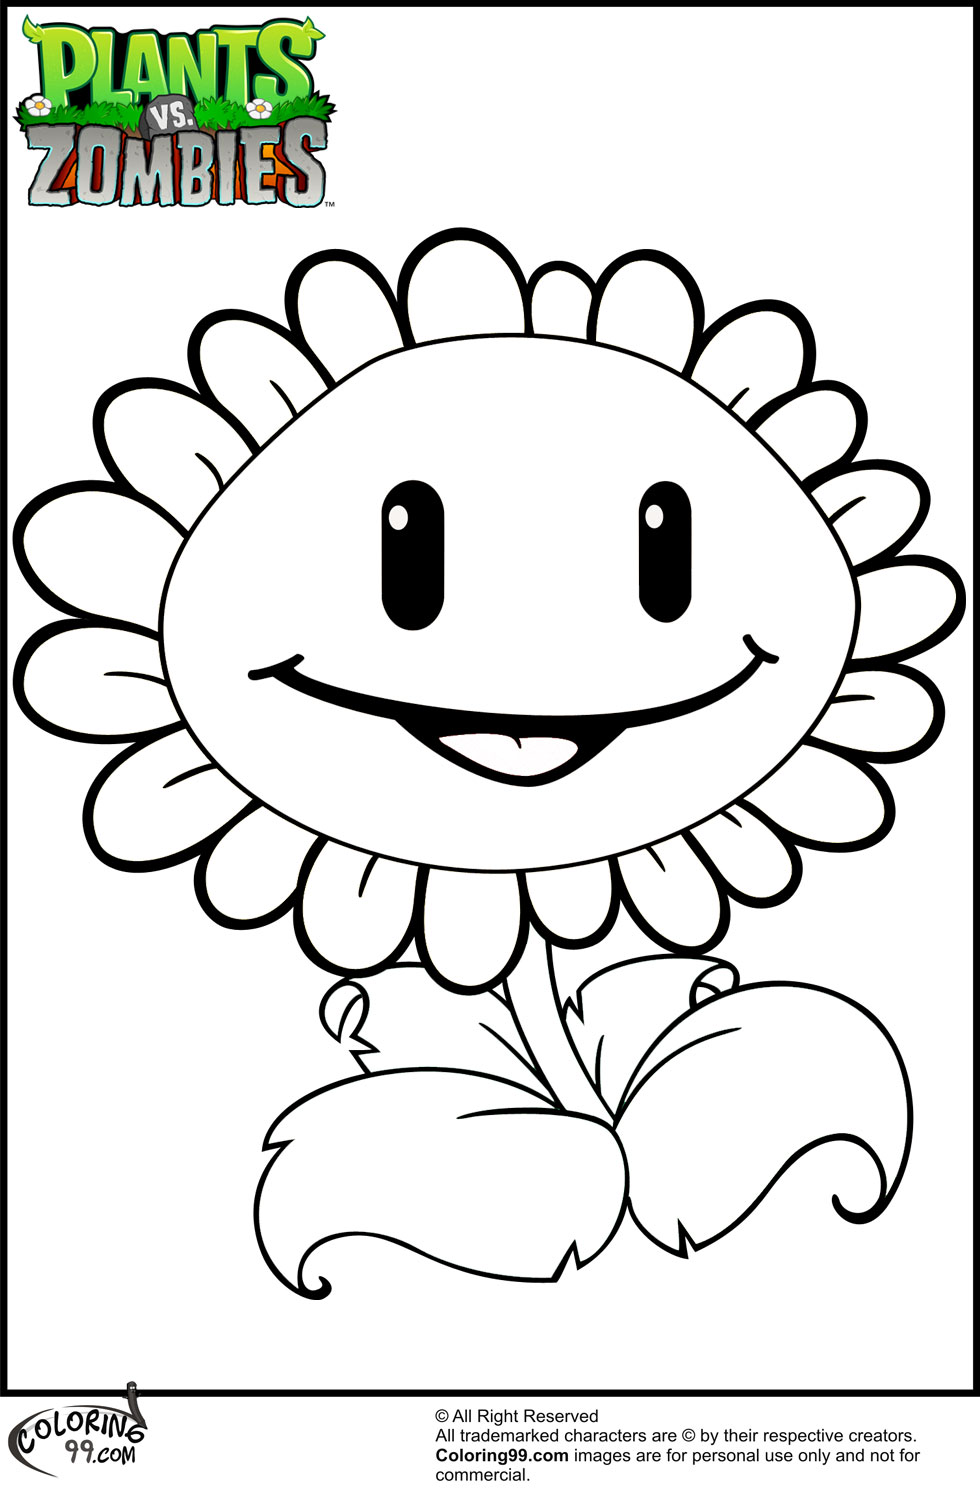 Plants VS Zombies Coloring Pages | Minister Coloring